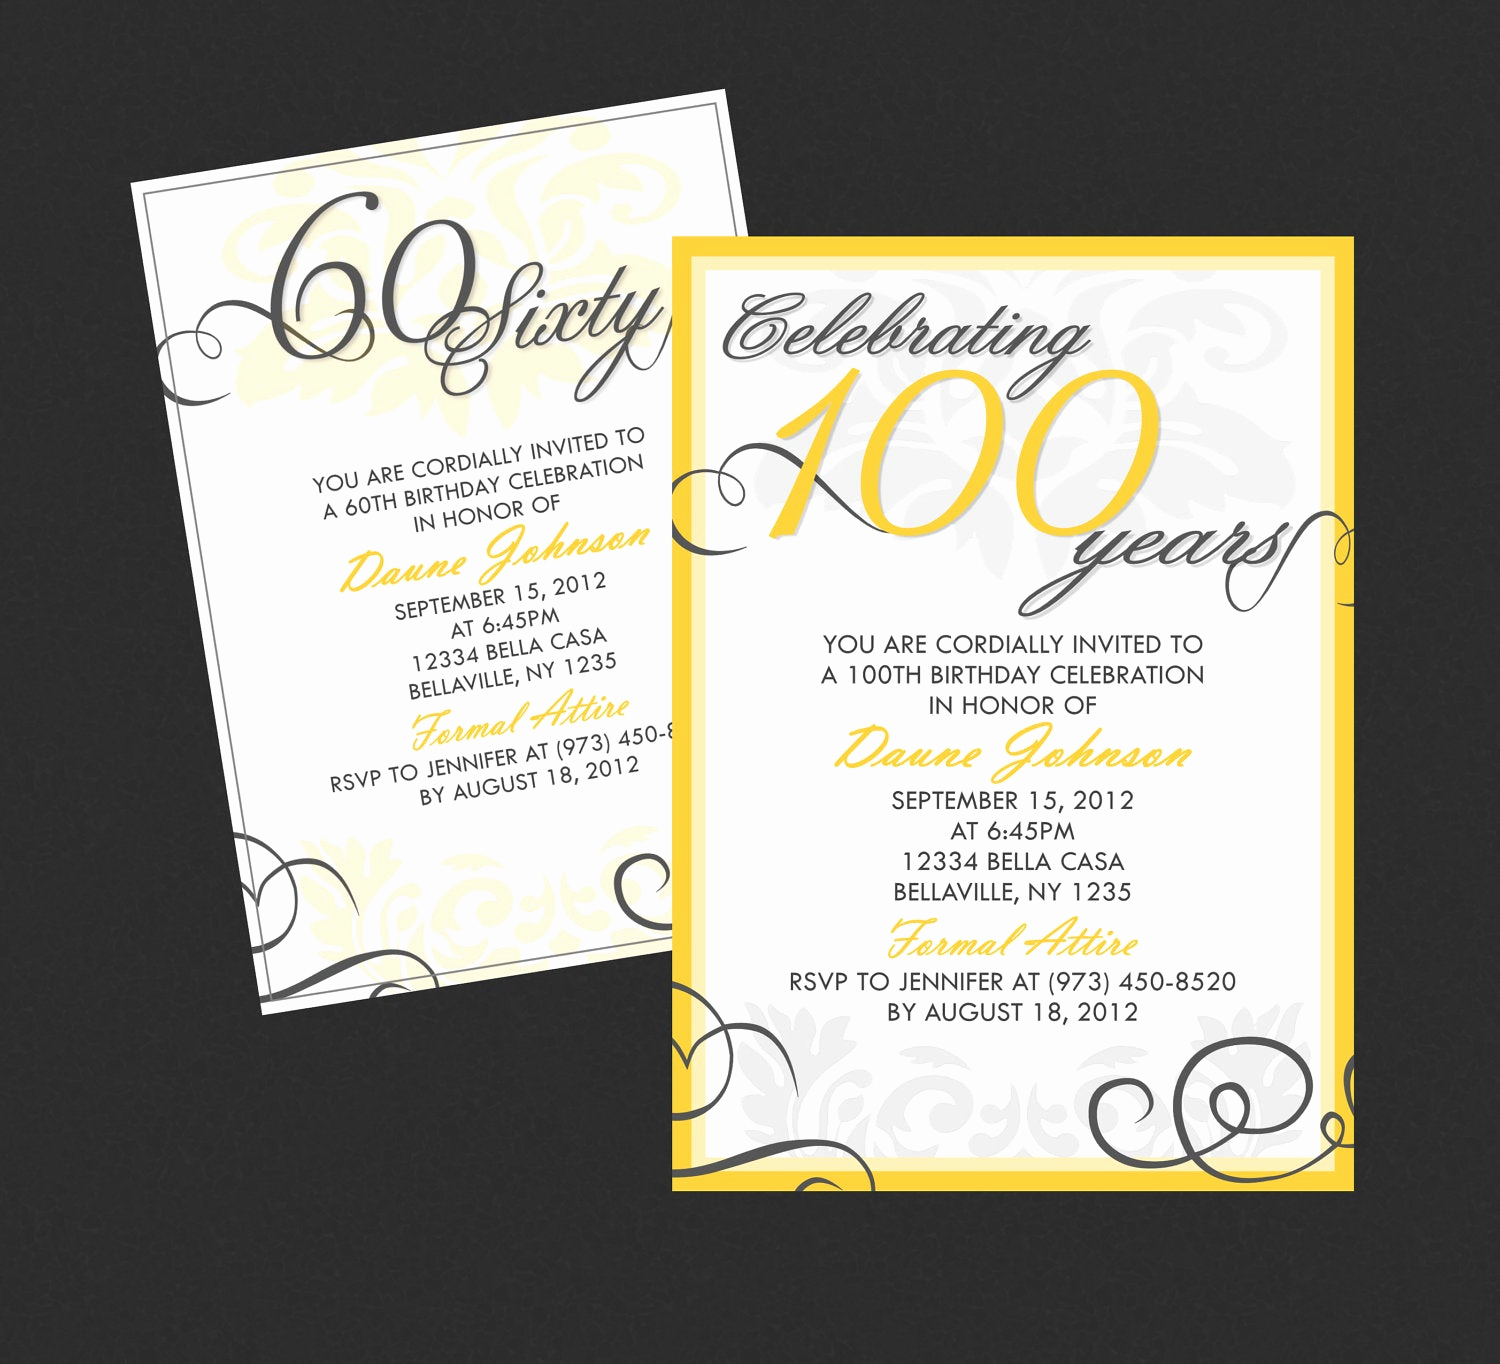 Birthday Invitation Ideas for Adults Fresh 40th Birthday Ideas Free Birthday Invitation Templates Adults